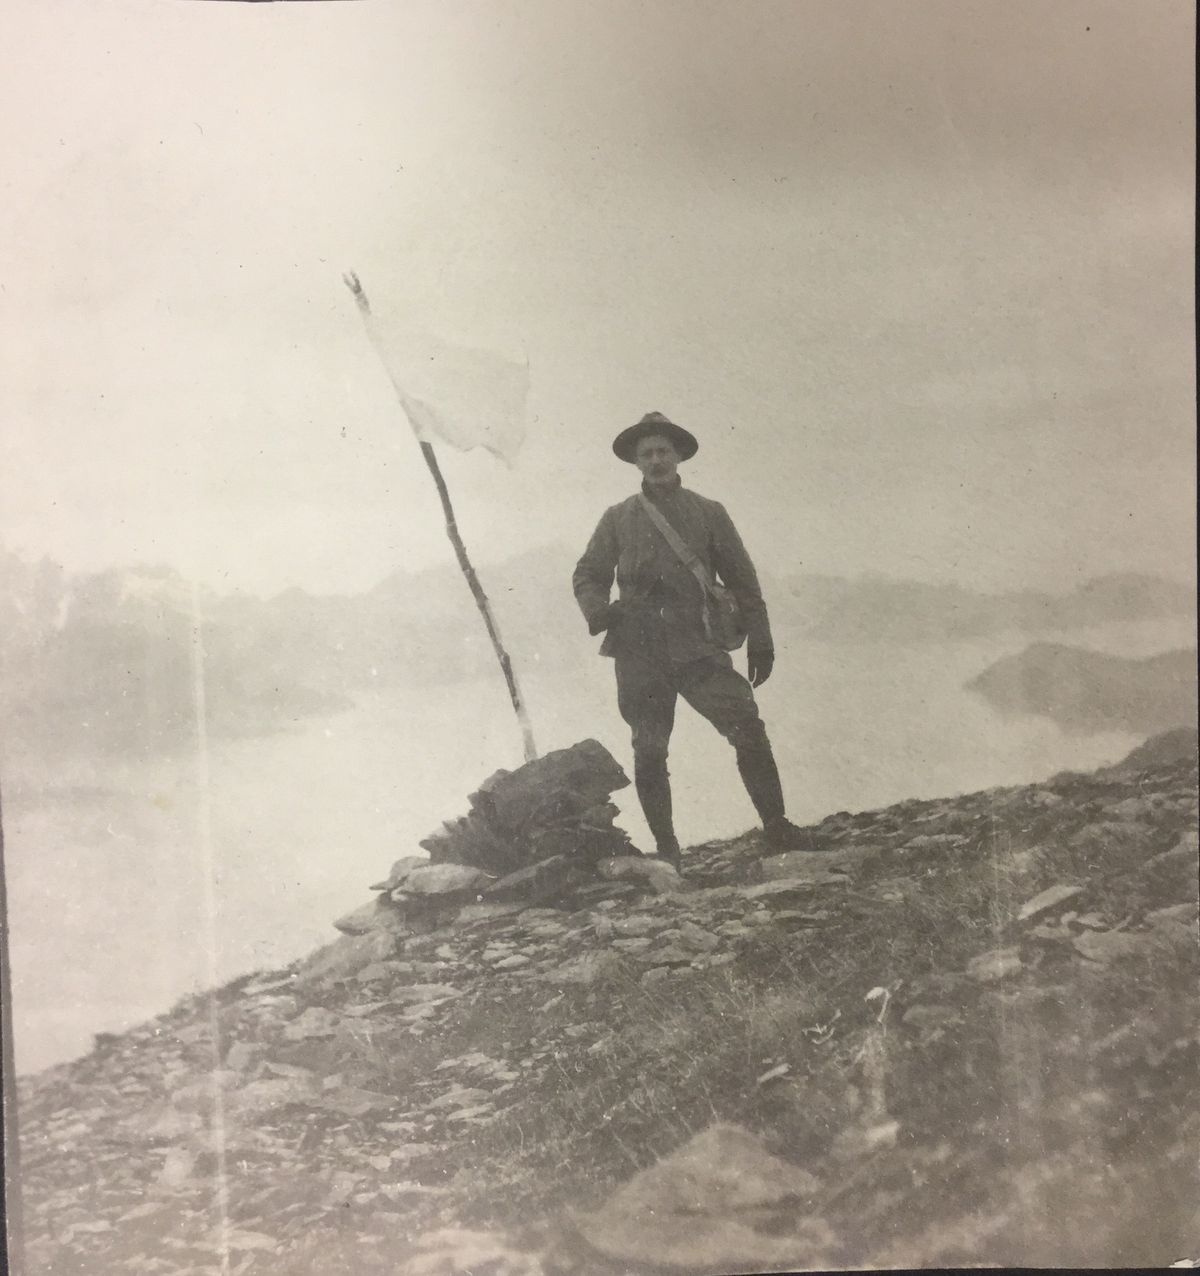 George E. Winter, the auditor for the Alaska Central Railway, standsat Race Point beside a cairn with a flag for a photo taken sometime between 1905 and 1908 when the Winters lived in Seward. Itacknowledge the importance of Race Point long before the first official Mount Marathon Race in 1915. (George Winter collection, courtesy of the Resurrection Bay Historical Society)